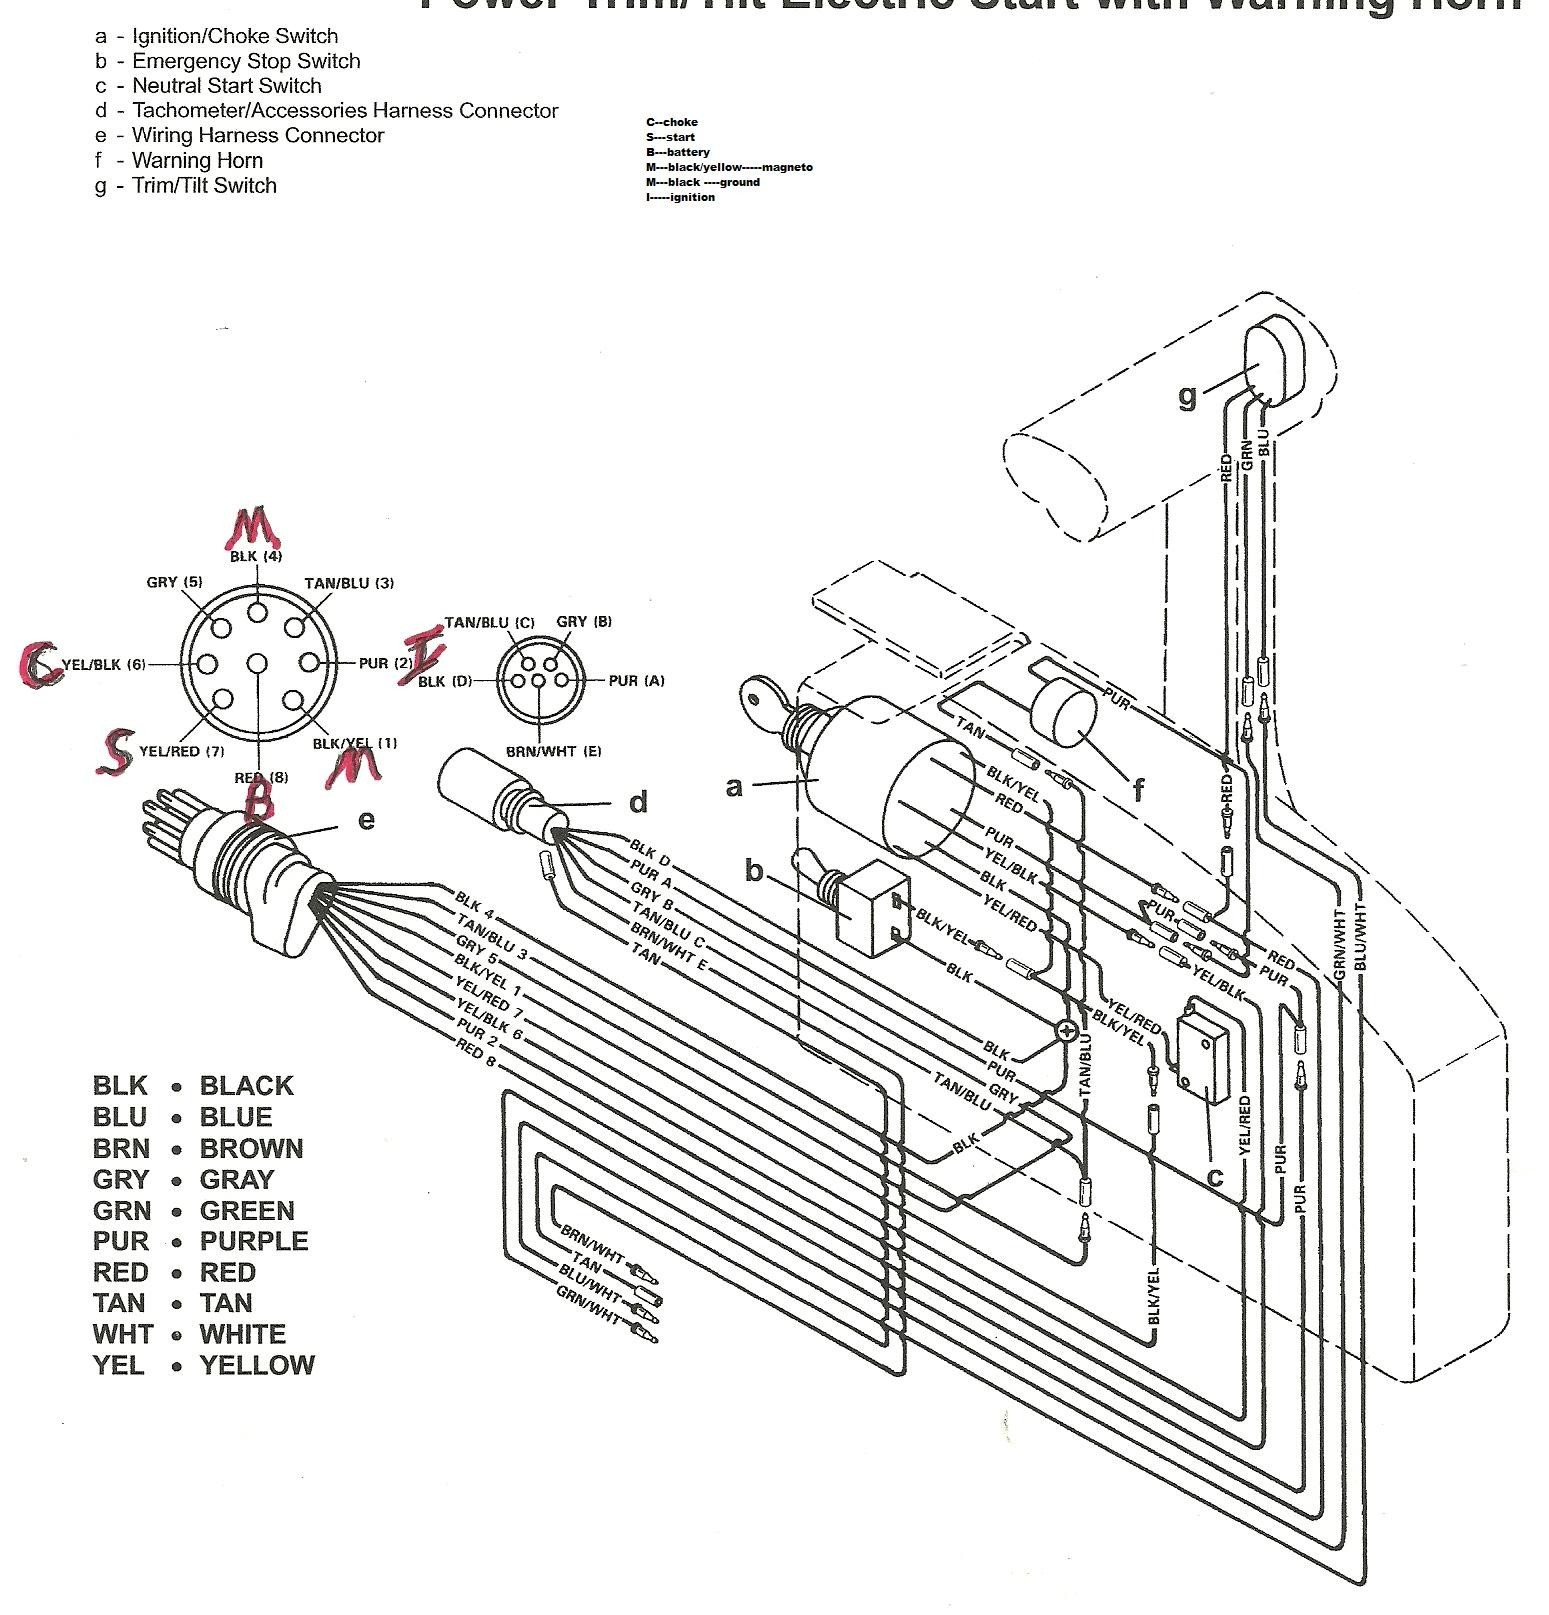 Mercury Outboard Ignition Switch Wiring Diagram Mercury Outboard Tach Wiring Diagram Wiring Diagram Of Mercury Outboard Ignition Switch Wiring Diagram